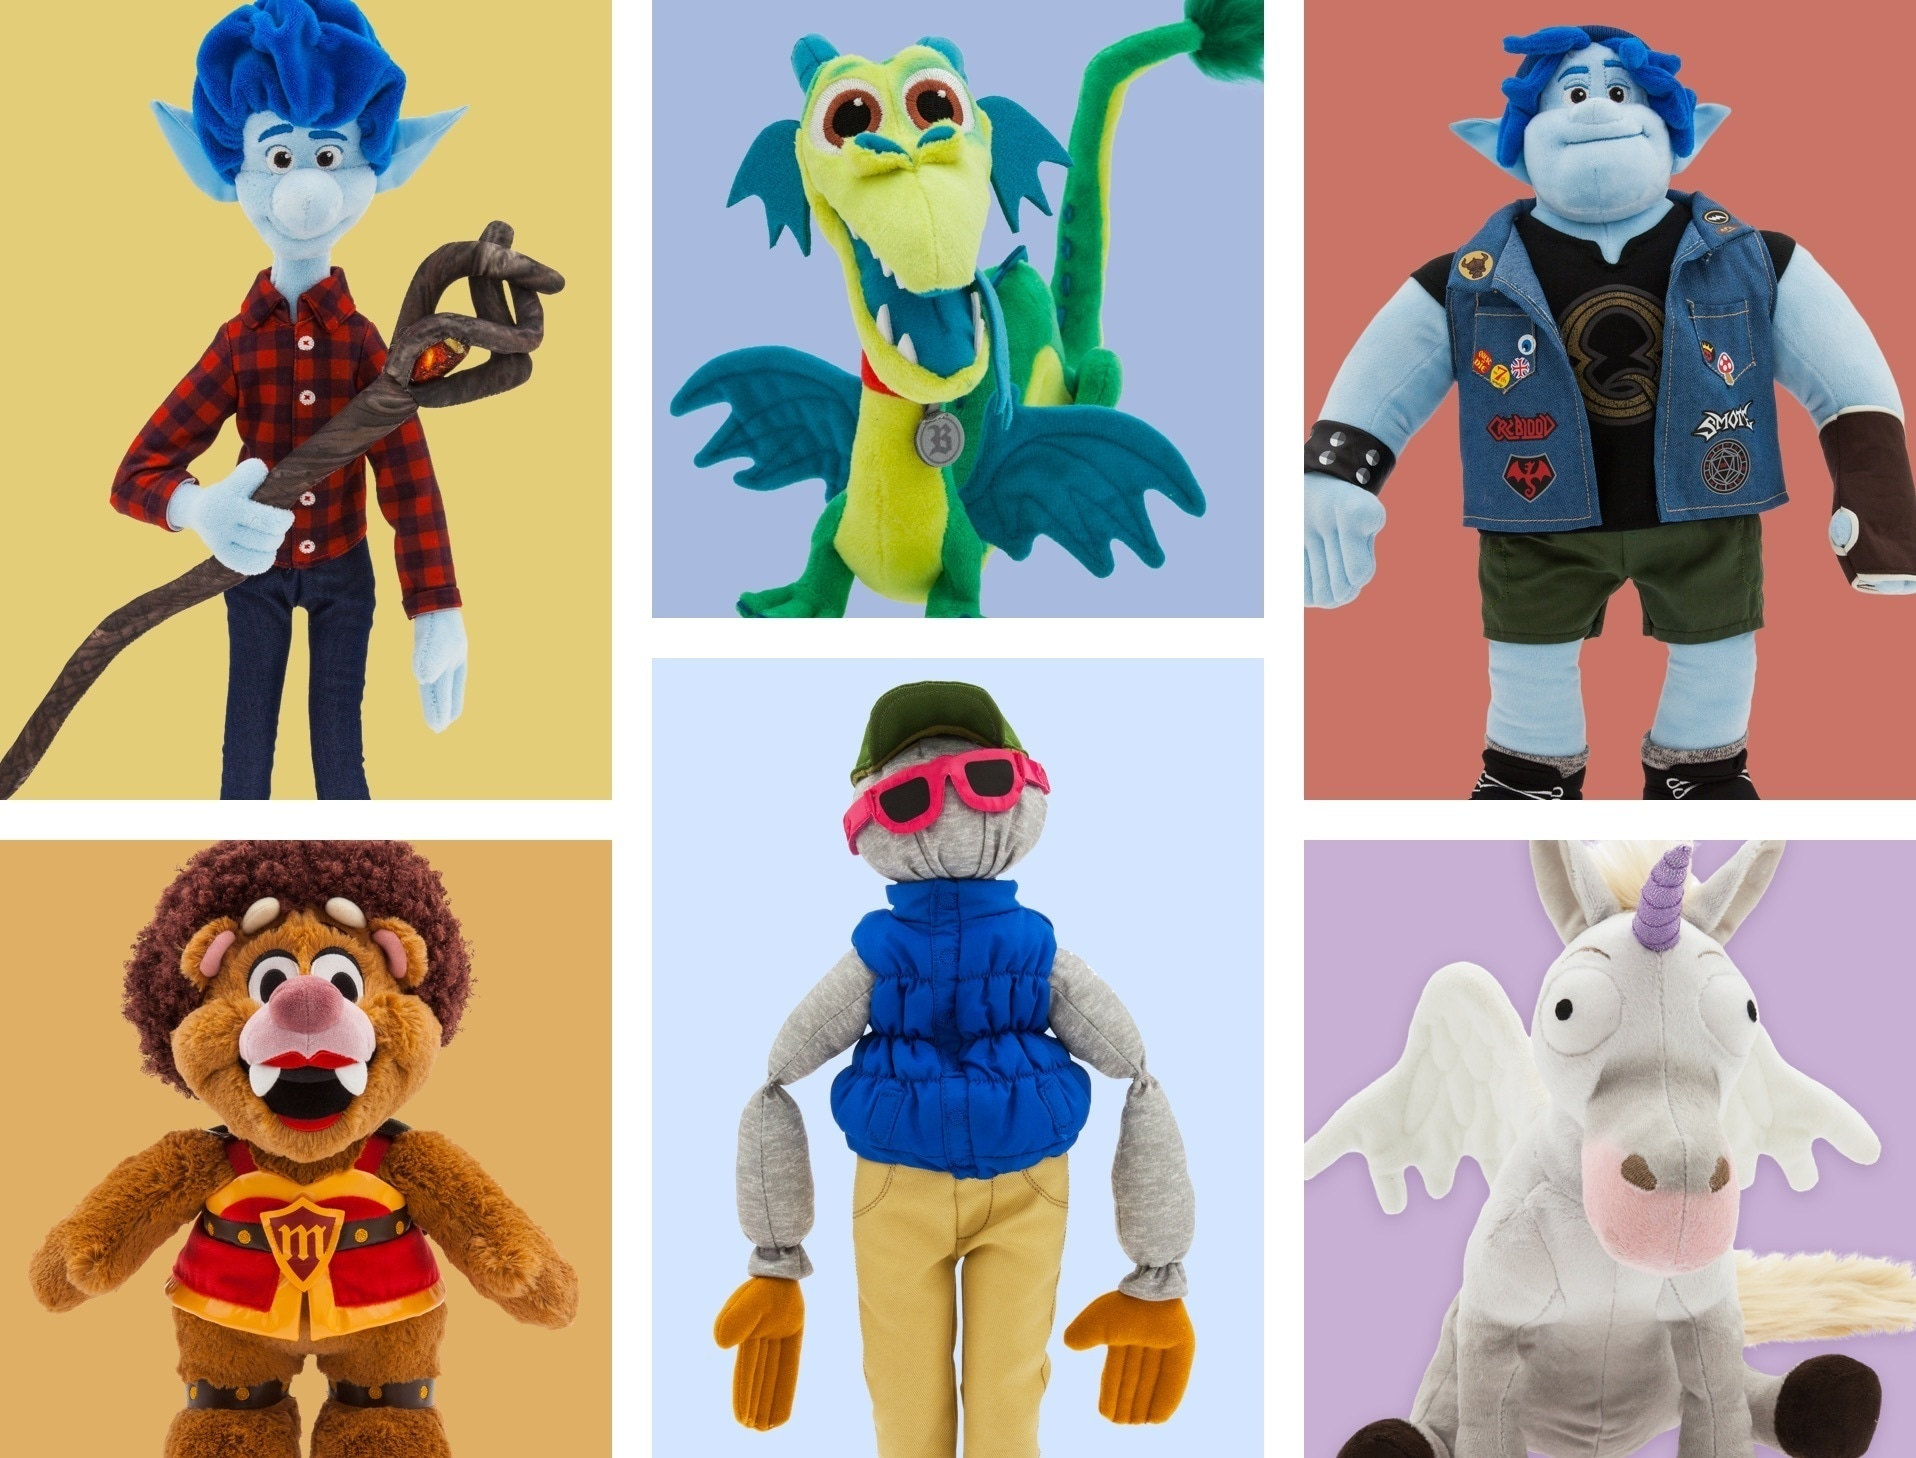 A selection of soft toys inspired by characters from Onward